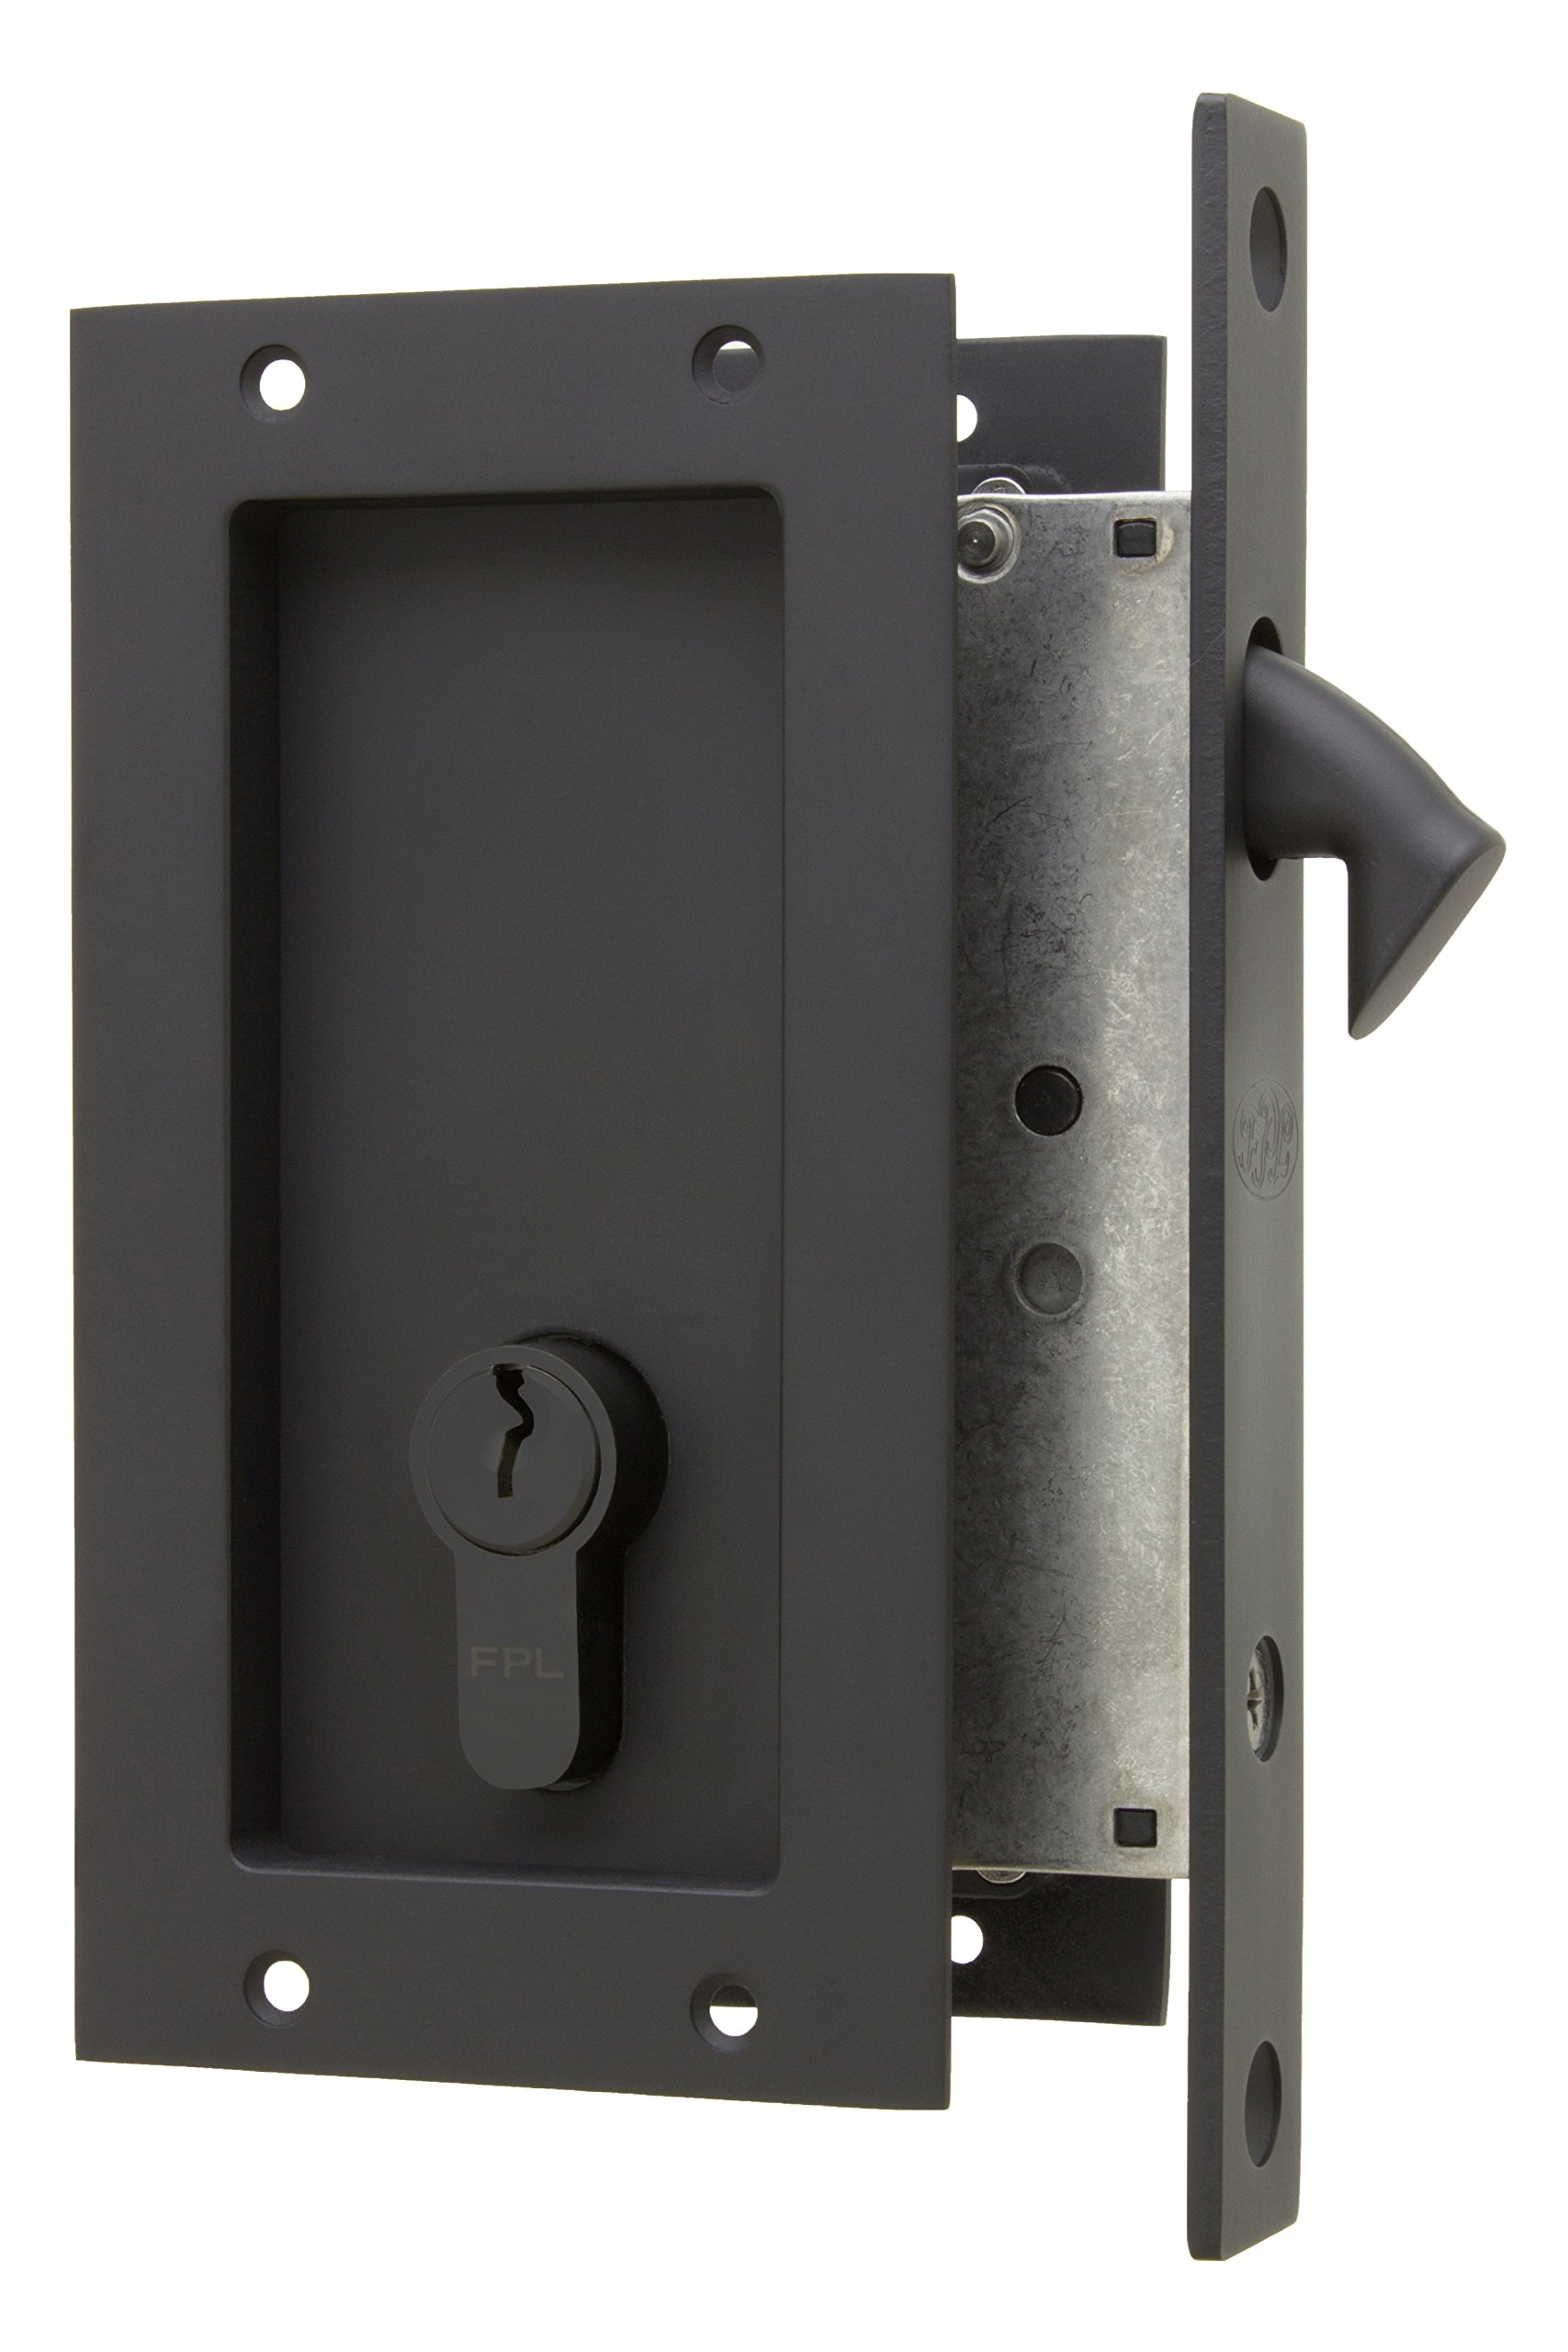 Anacapa by FPL- Solid Brass Modern Pocket Door Mortise Lock Set with Double Keyed Euro Profile Cylinder - Oil Rubbed Bronze